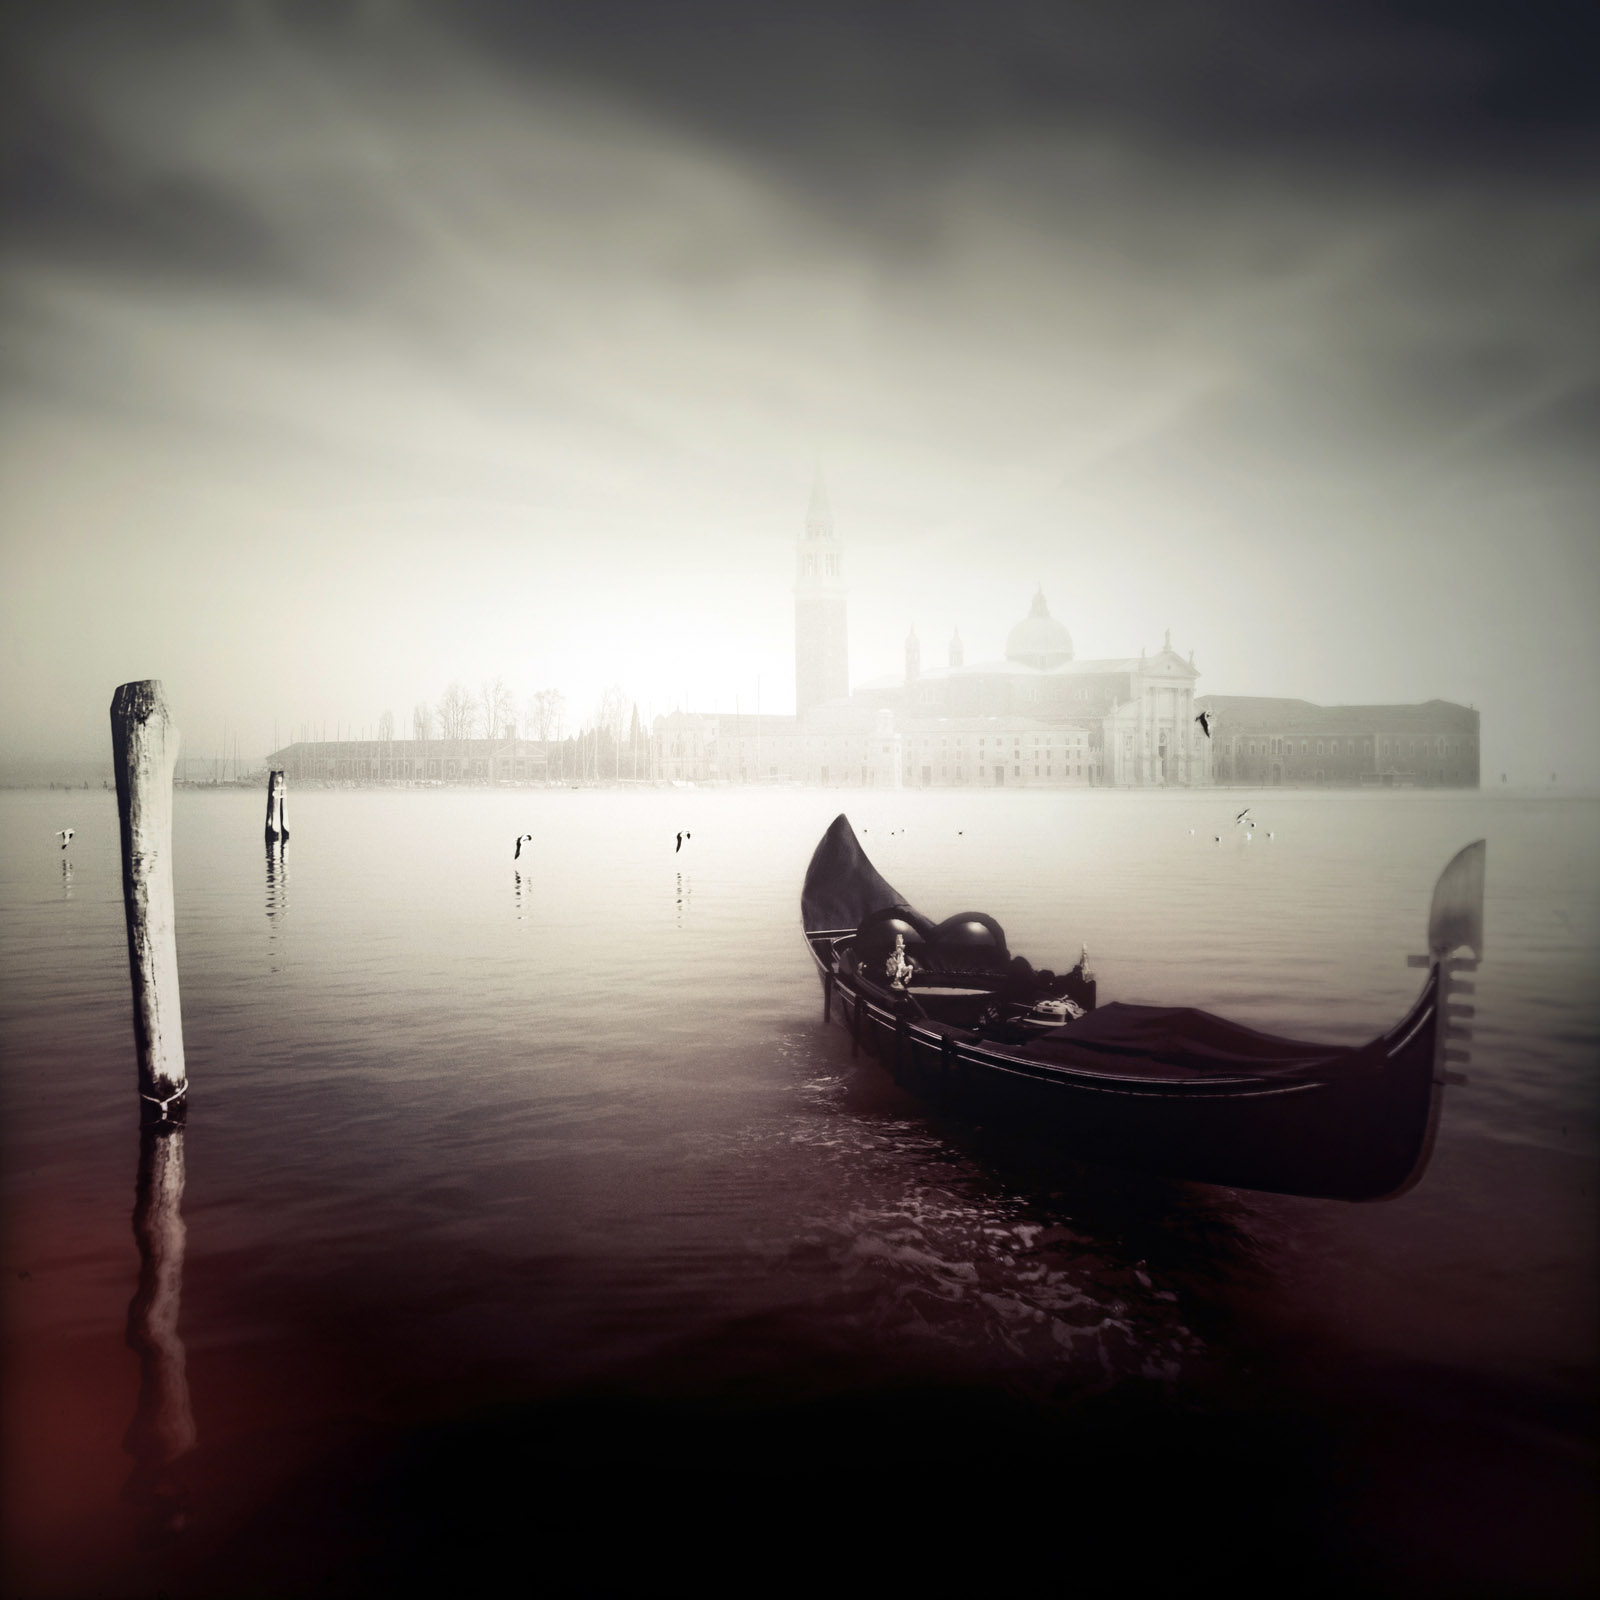 Death-in-venice.jpg?fit=1600%2C1600